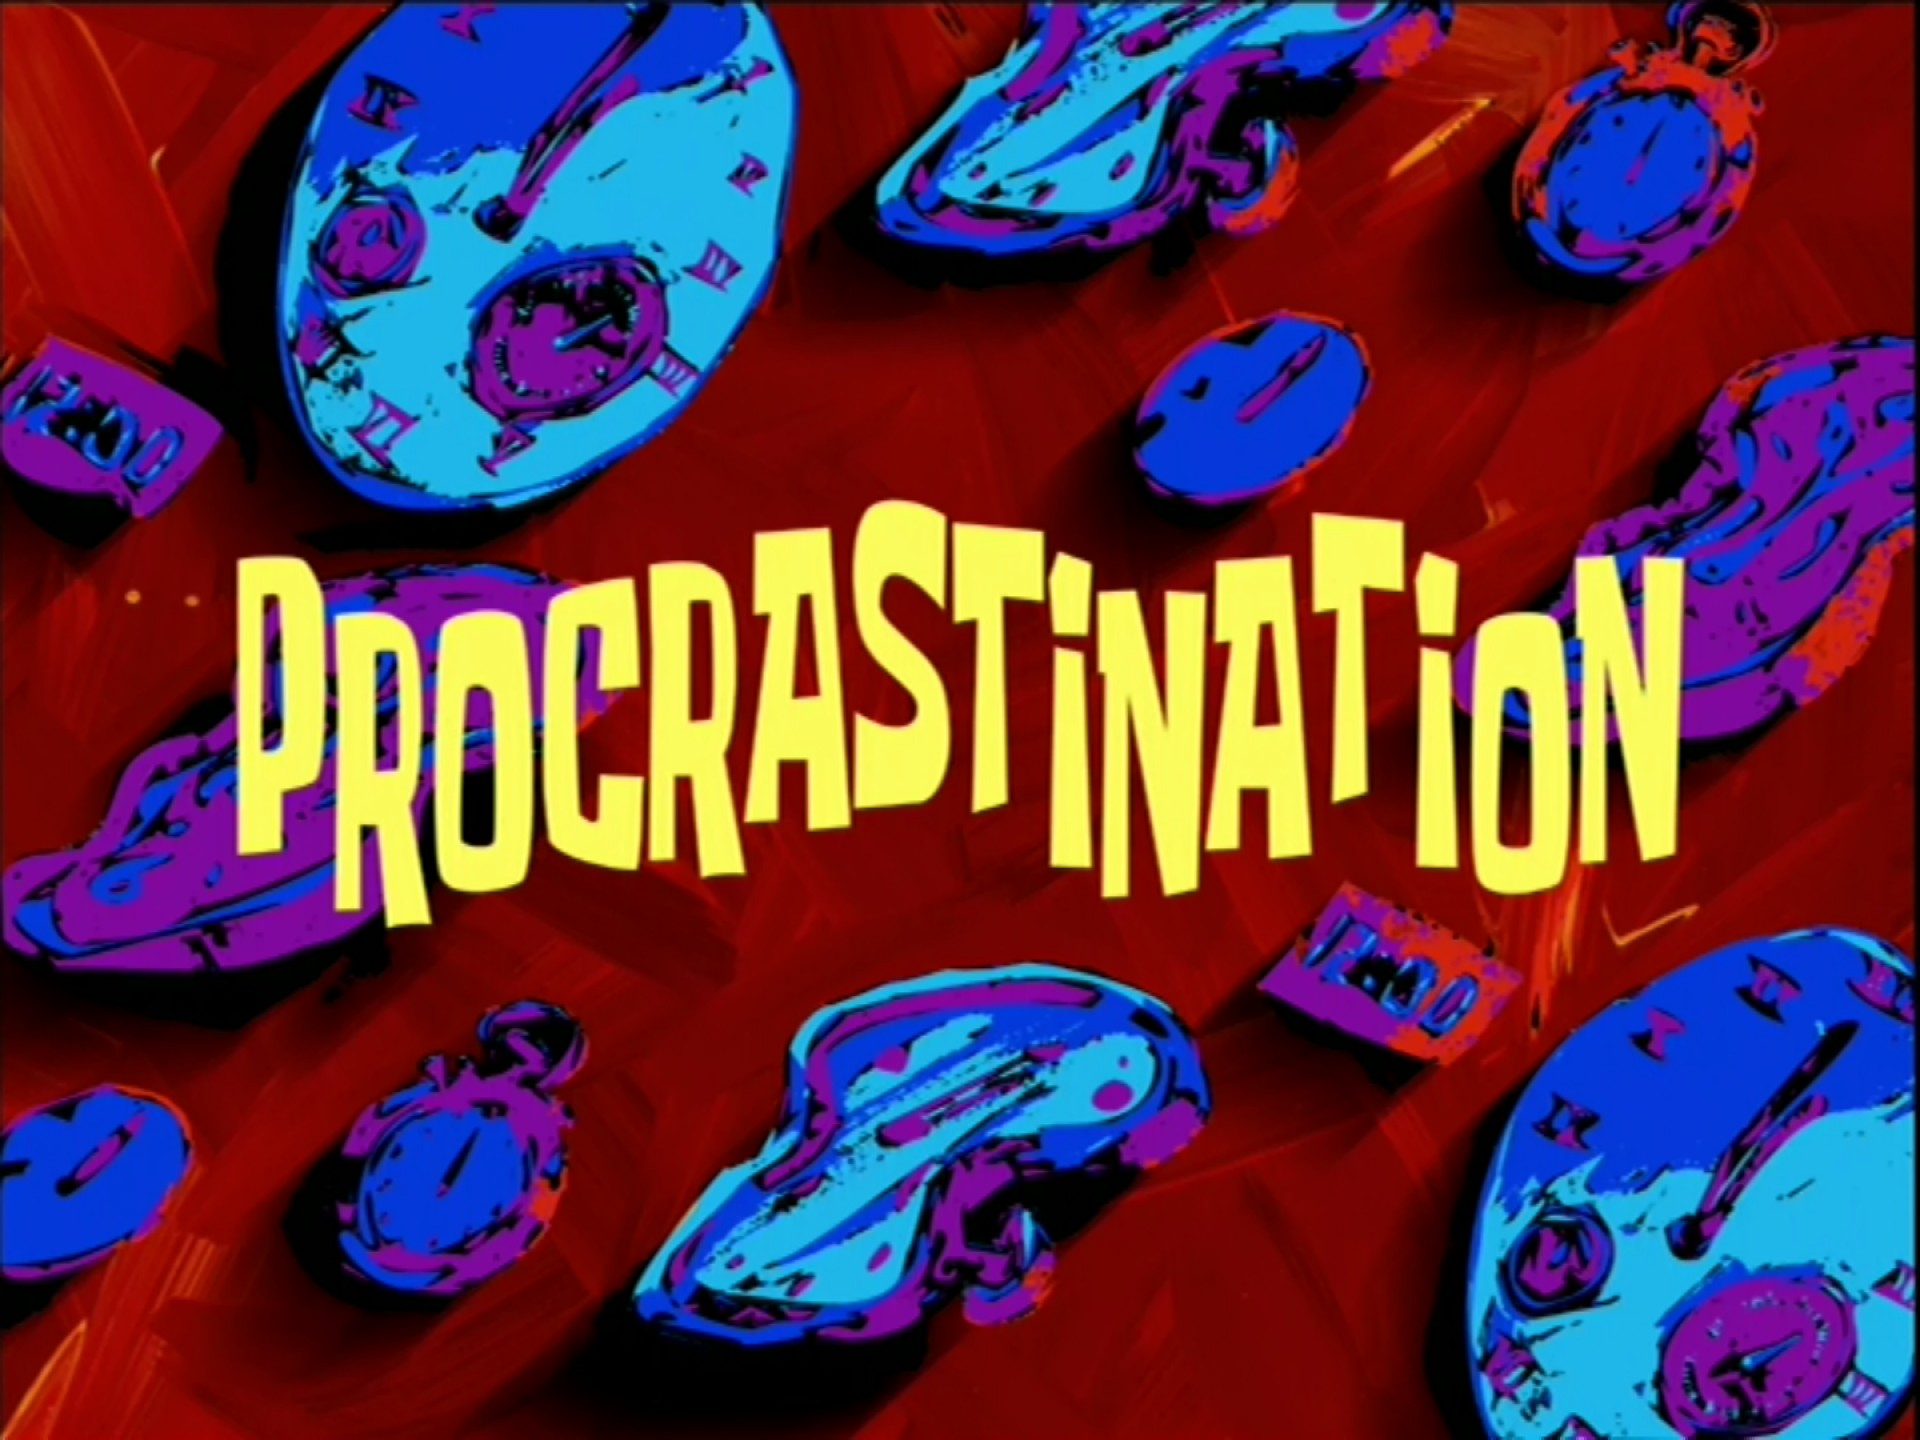 009 Procrastinationtranscript Encyclopedia Spongebobia Fandom Spongebob Writing Essay The Latestcb201806220 Gif Font For Hours Meme Rap Surprising 1920